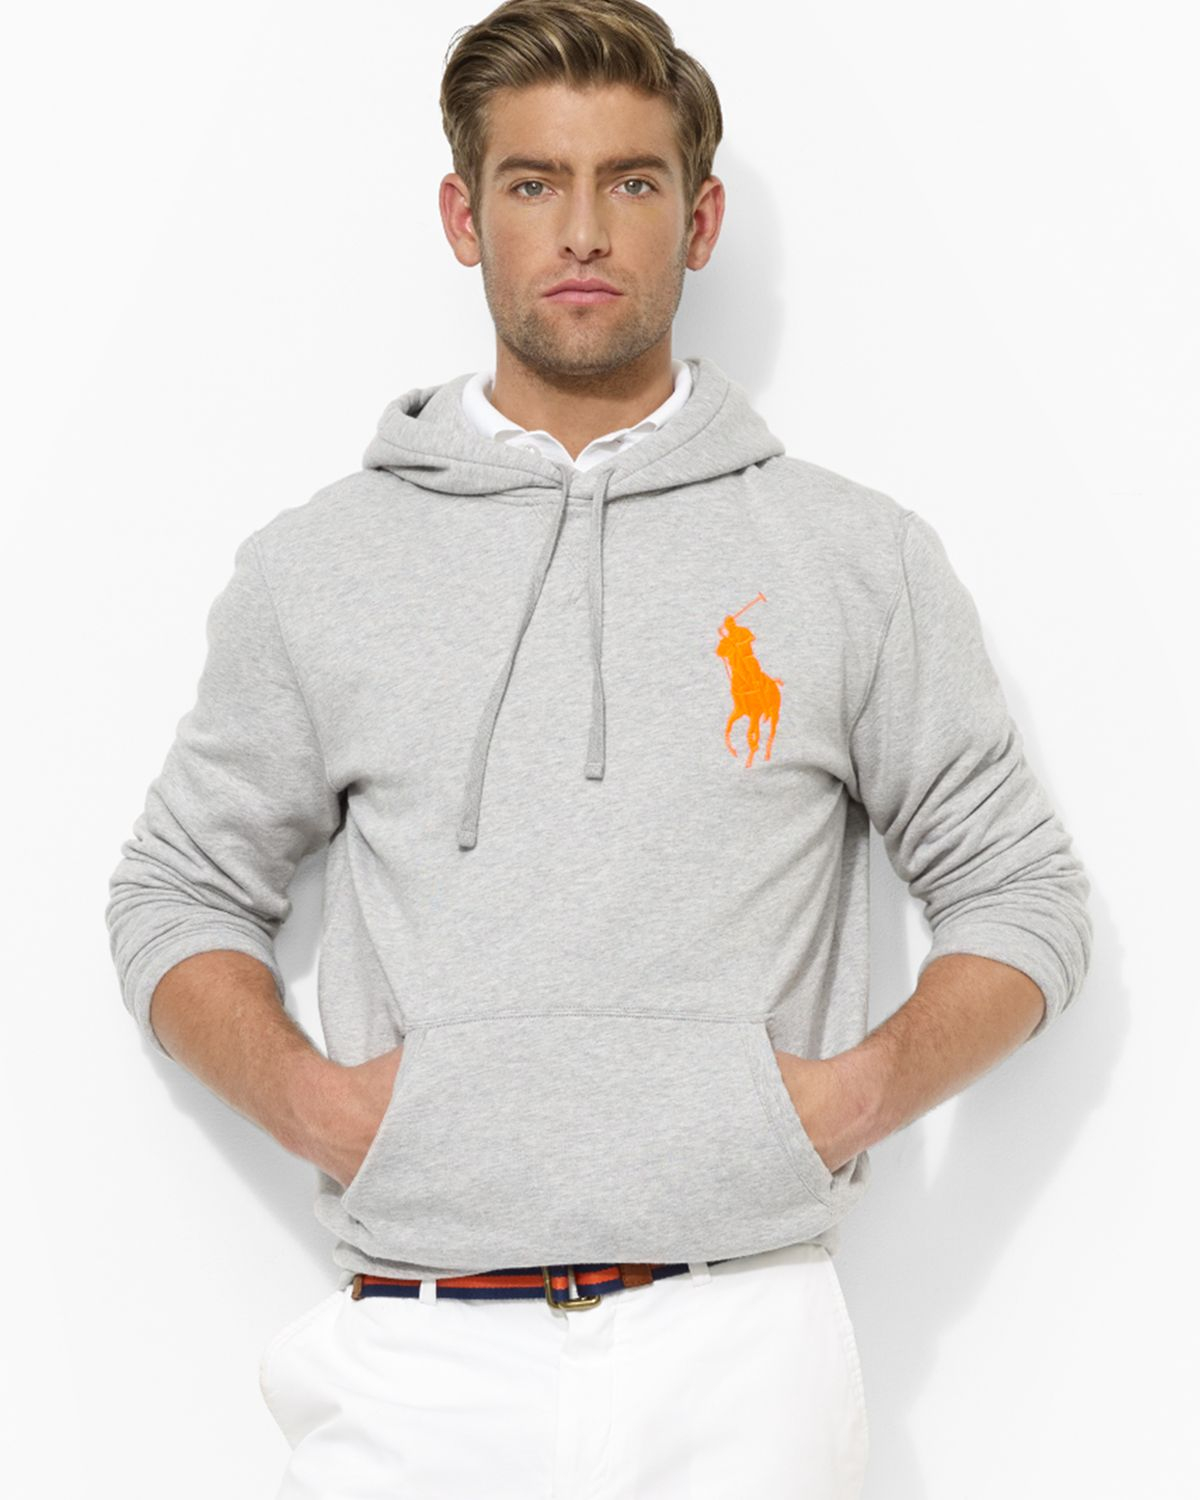 ralph lauren polo big pony beach fleece pullover hoodie in gray for men lyst. Black Bedroom Furniture Sets. Home Design Ideas